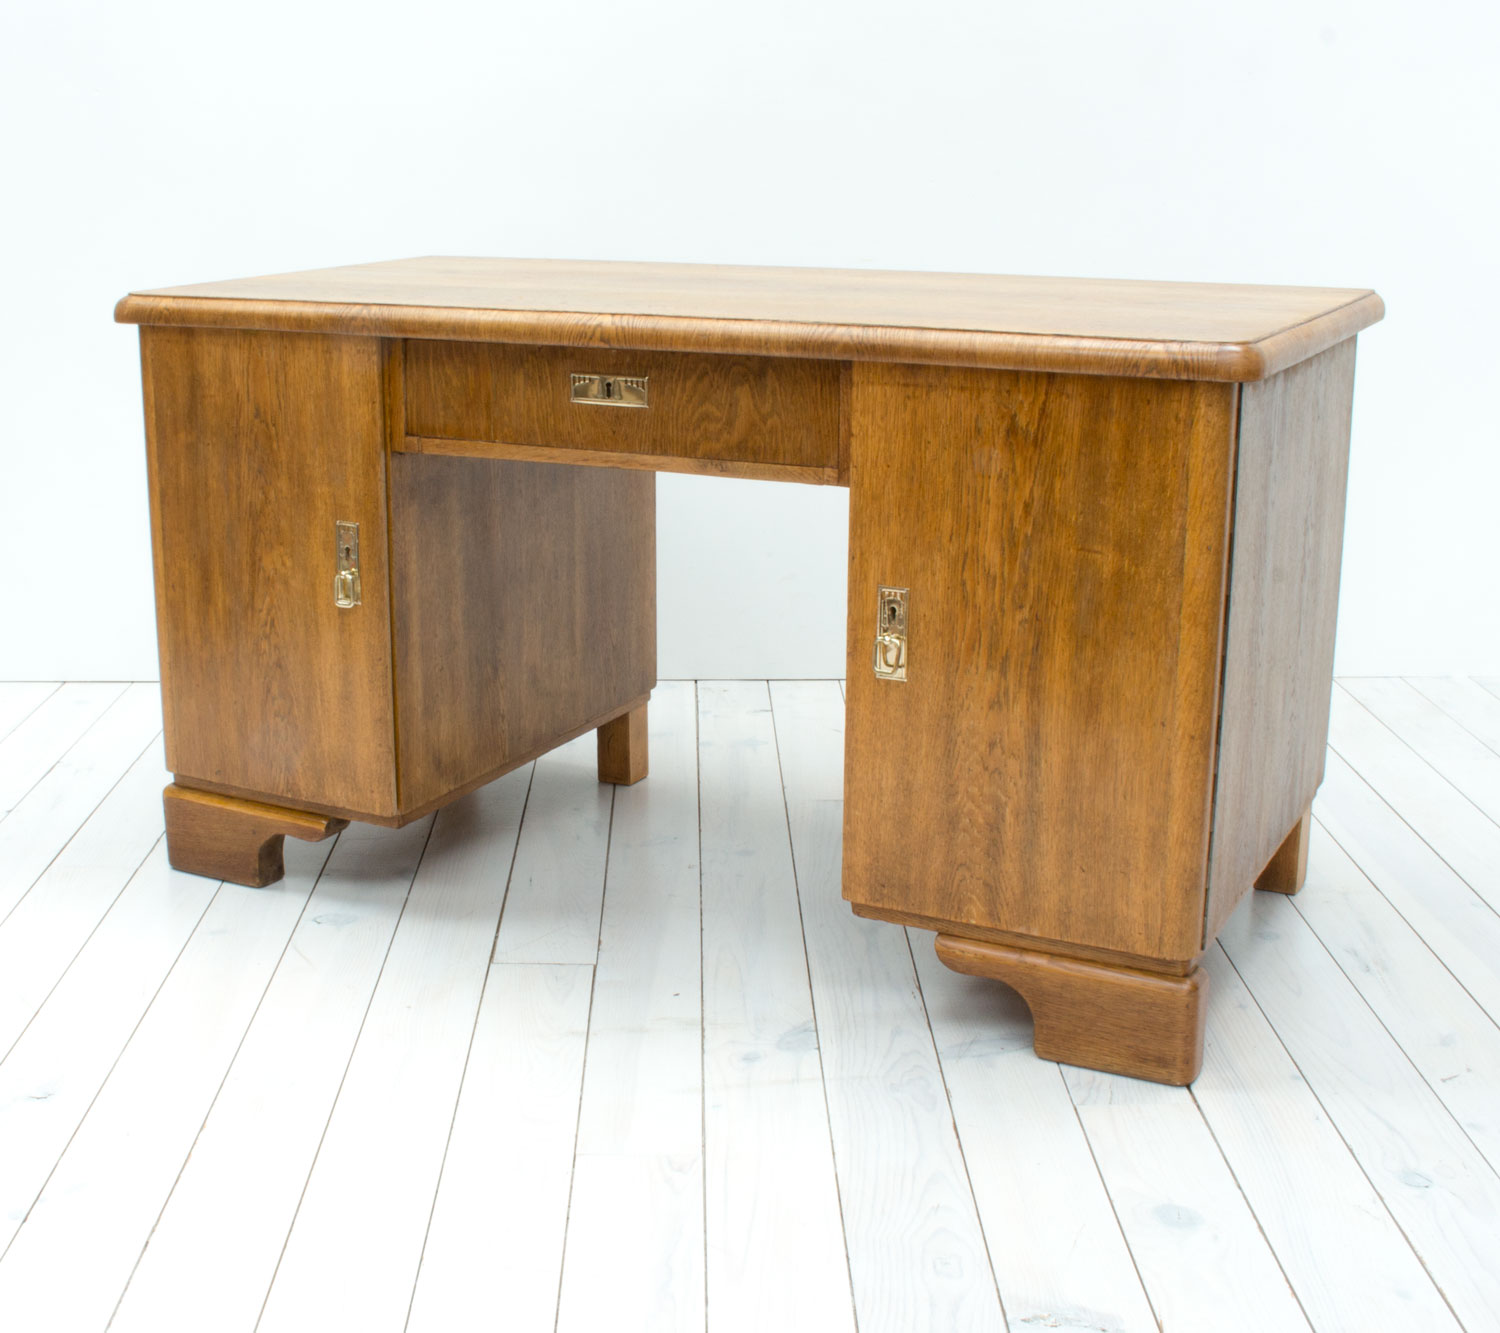 German Art Nouveau Oak Desk